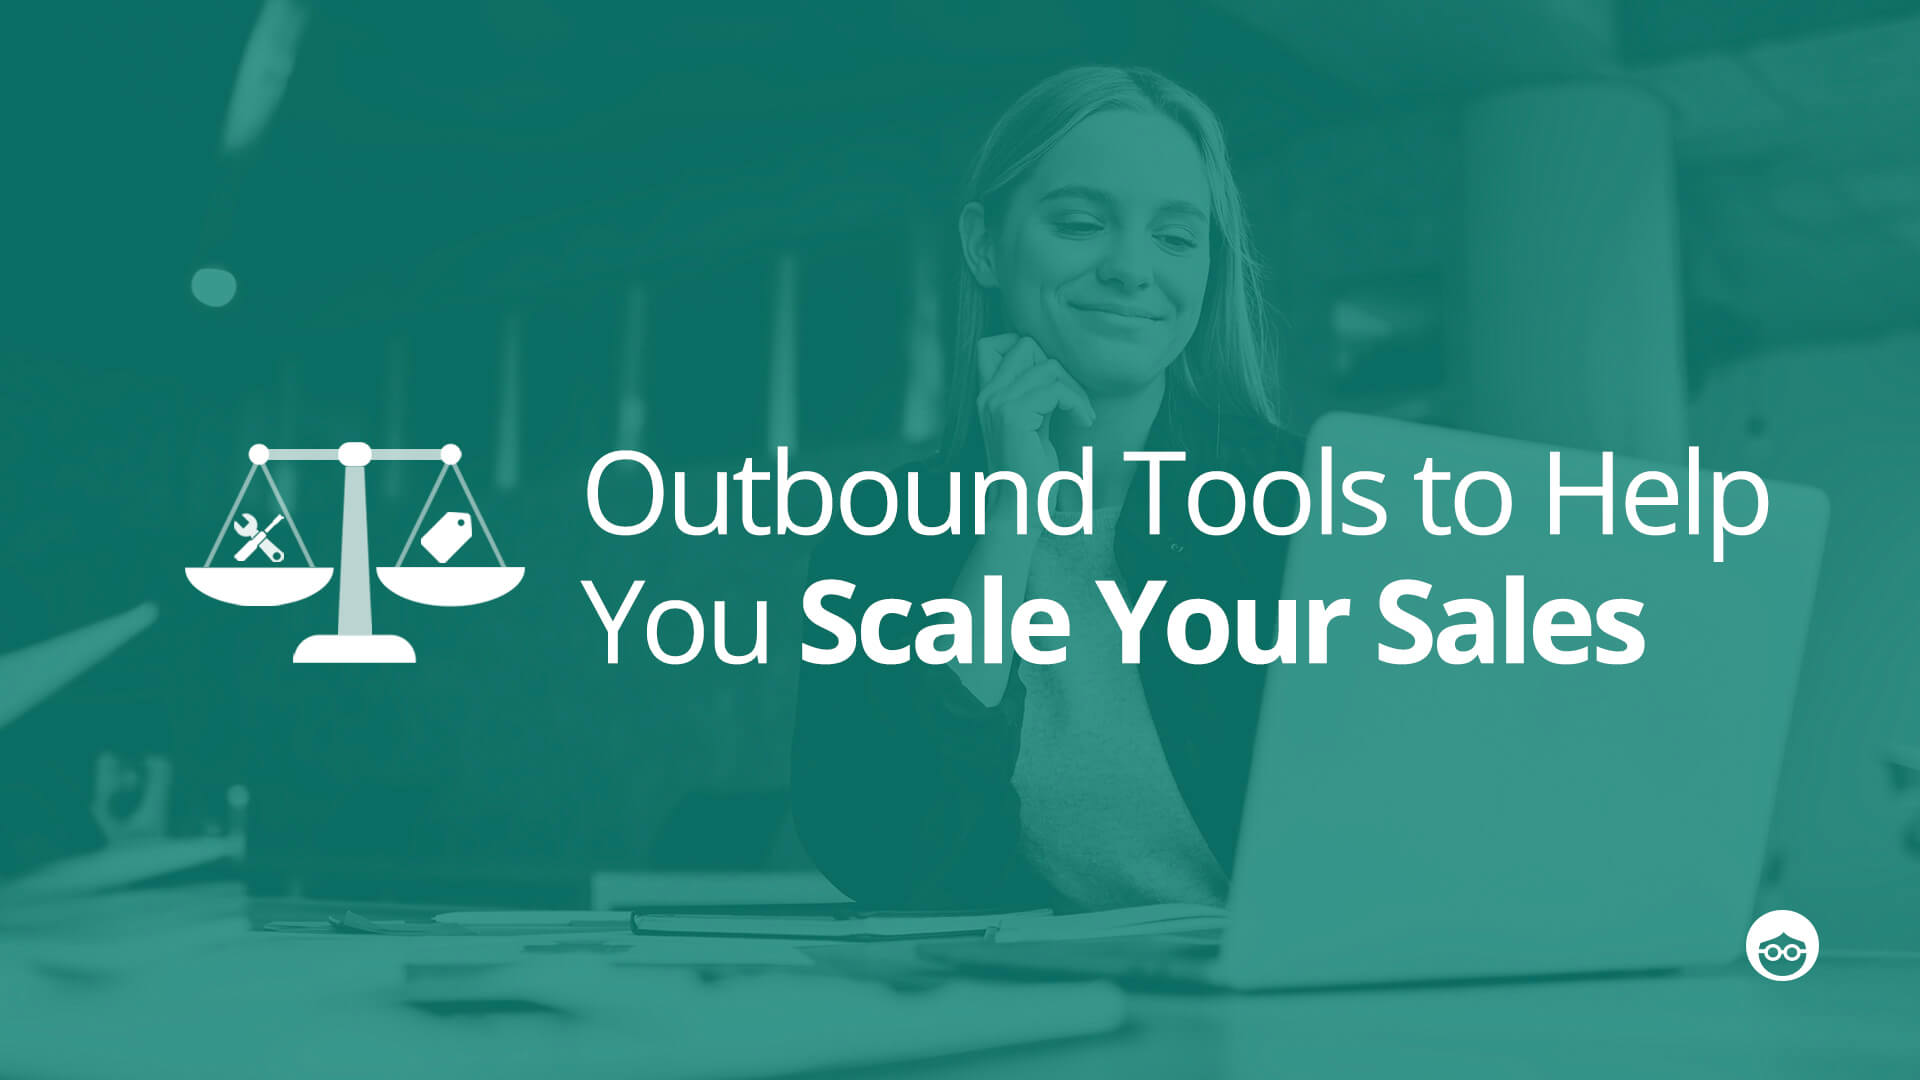 Outbound Tips & Tools to Help Scale Your Sales